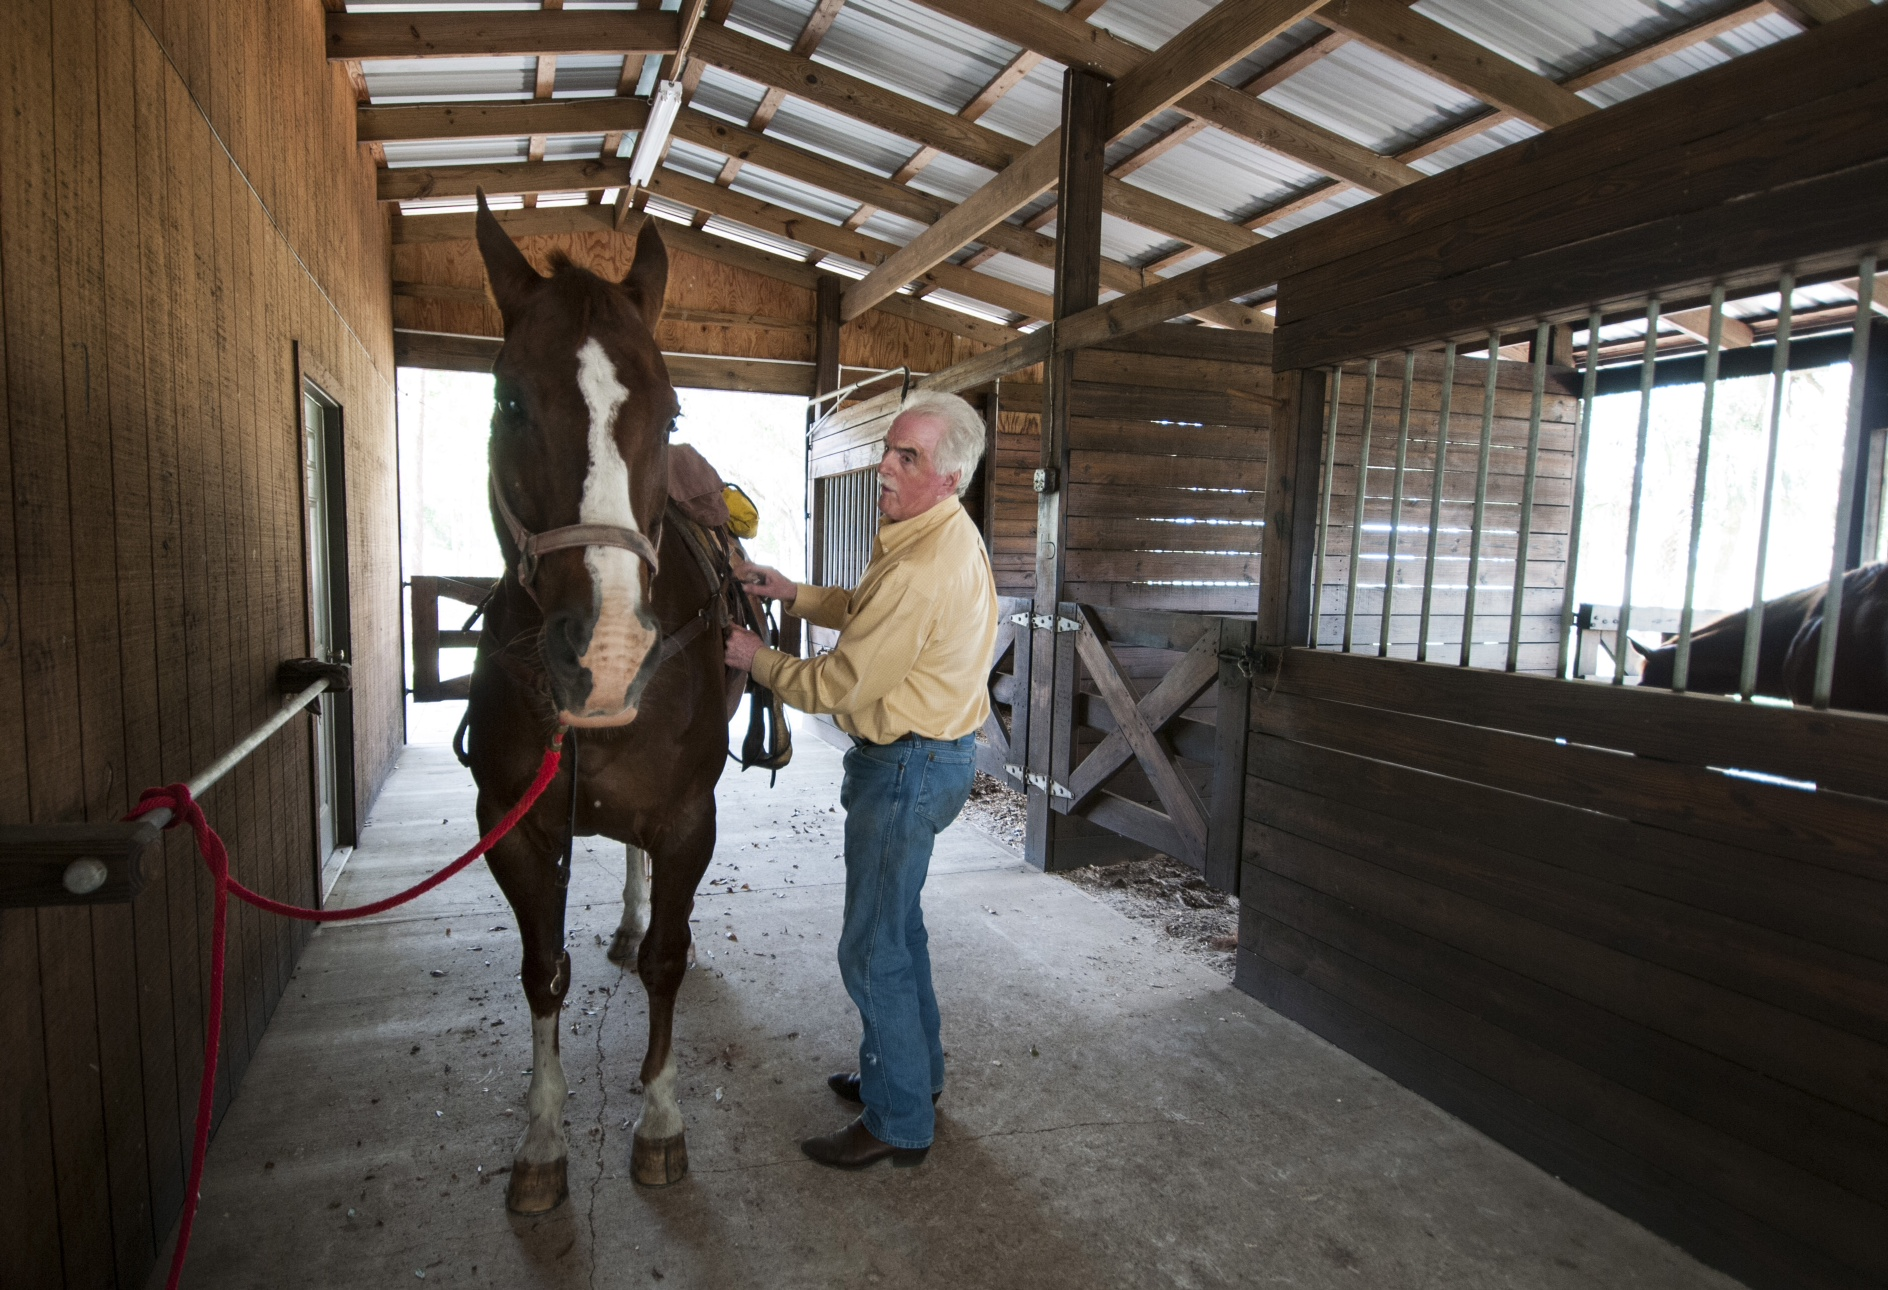 Dwayne House saddles up his horse on Goodno Ranch, where he is working with NRCS to enhance and prot